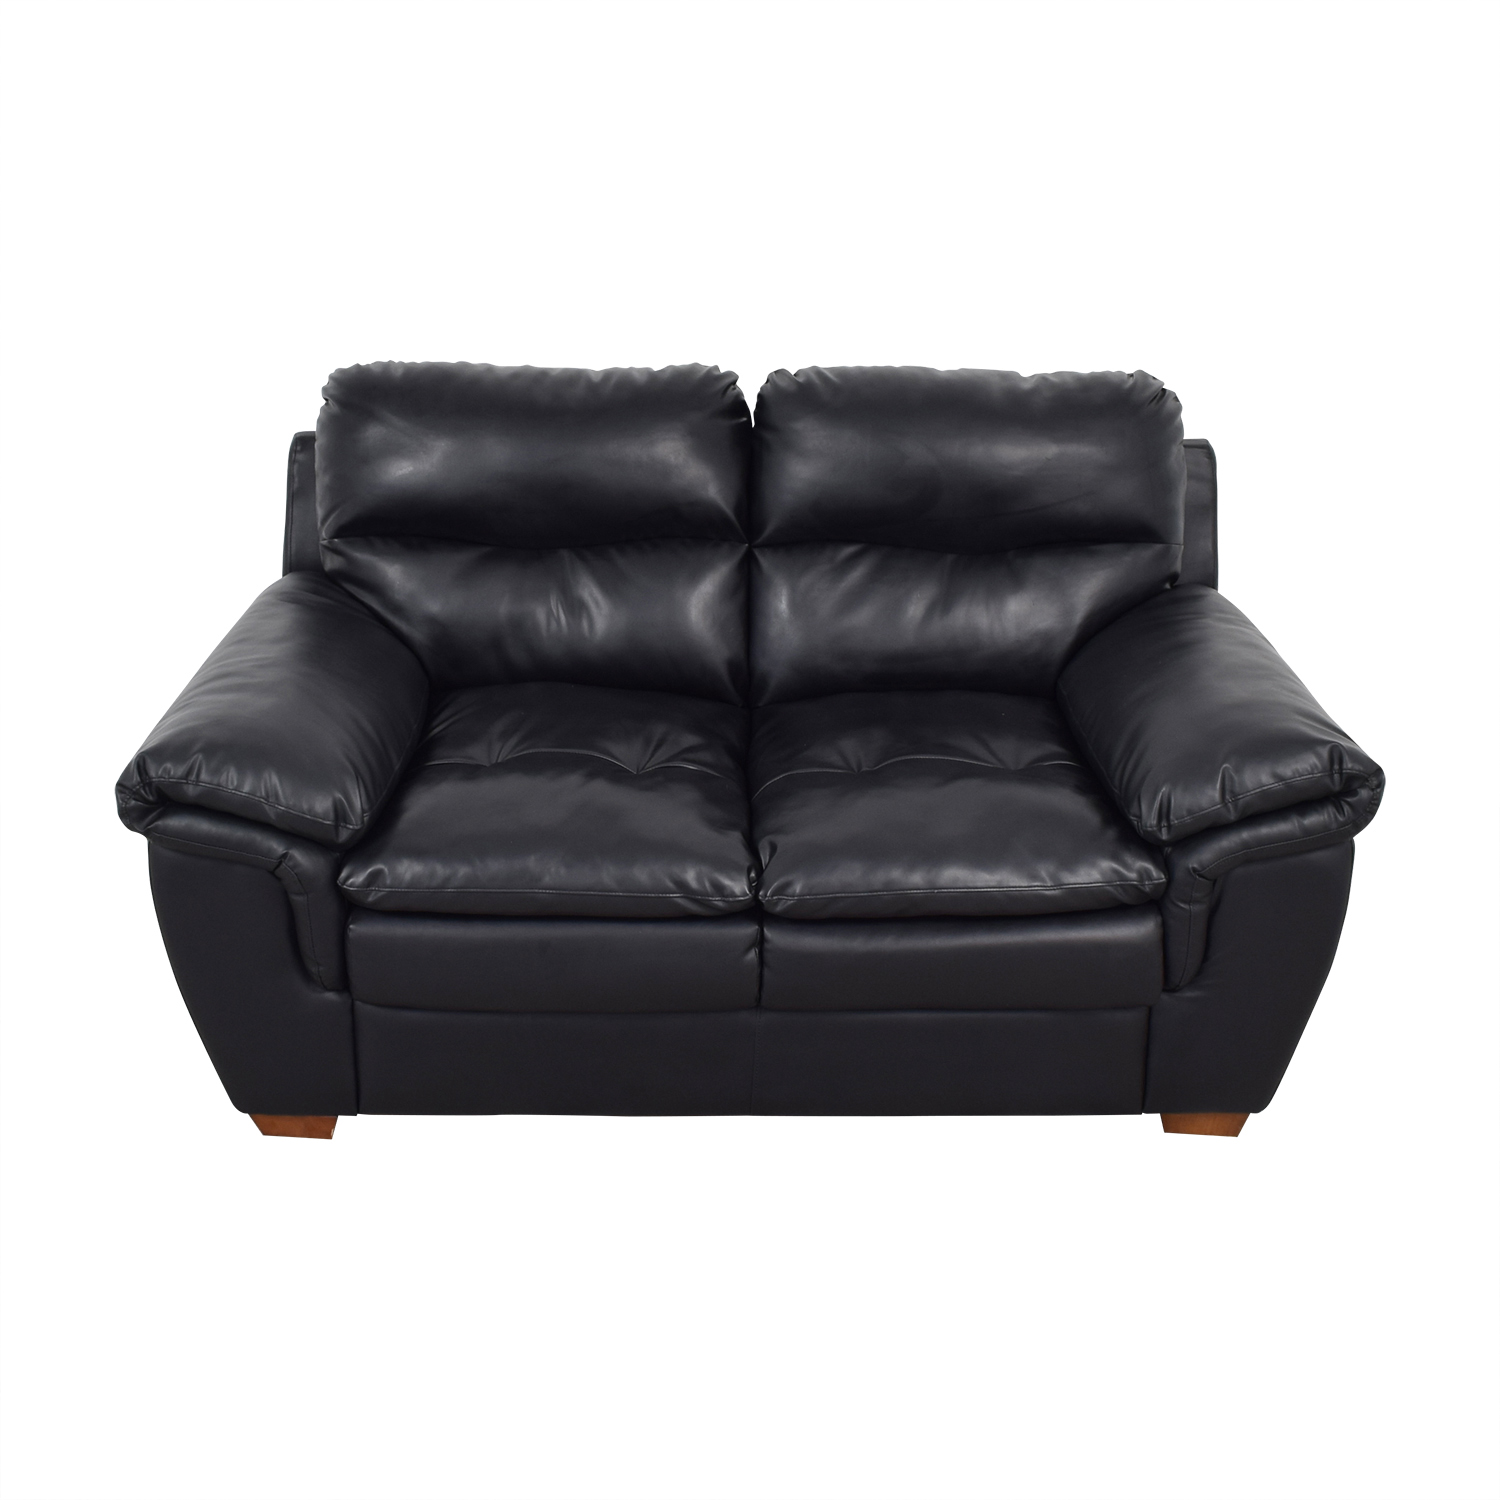 Jennifer Furniture Jennifer Furniture Wilton Black Loveseat nyc